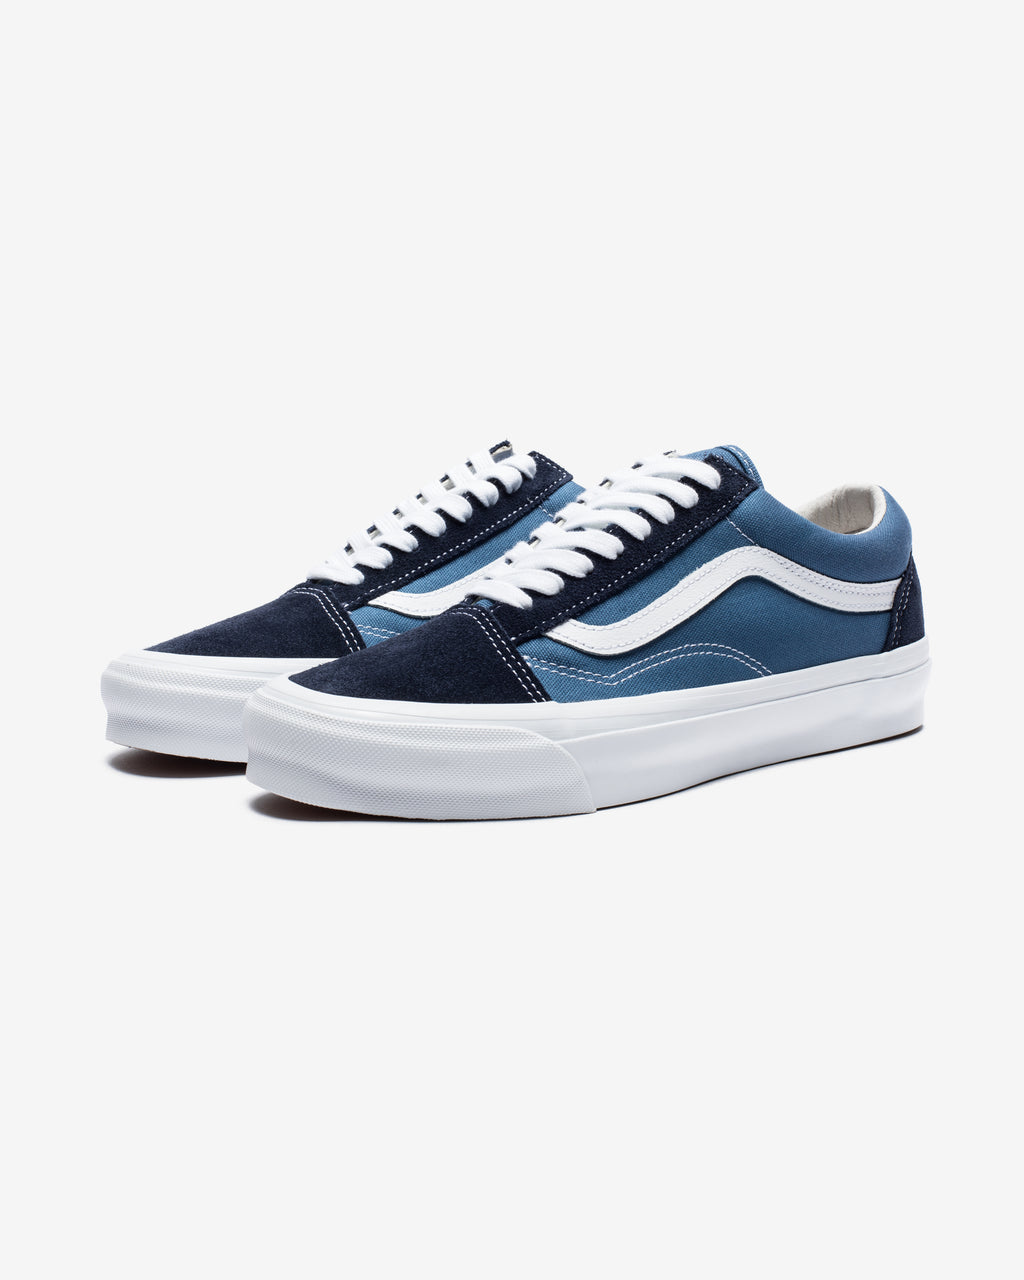 OG OLD SKOOL LX (SUEDE/CANVAS) - NAVY/ STVNVY